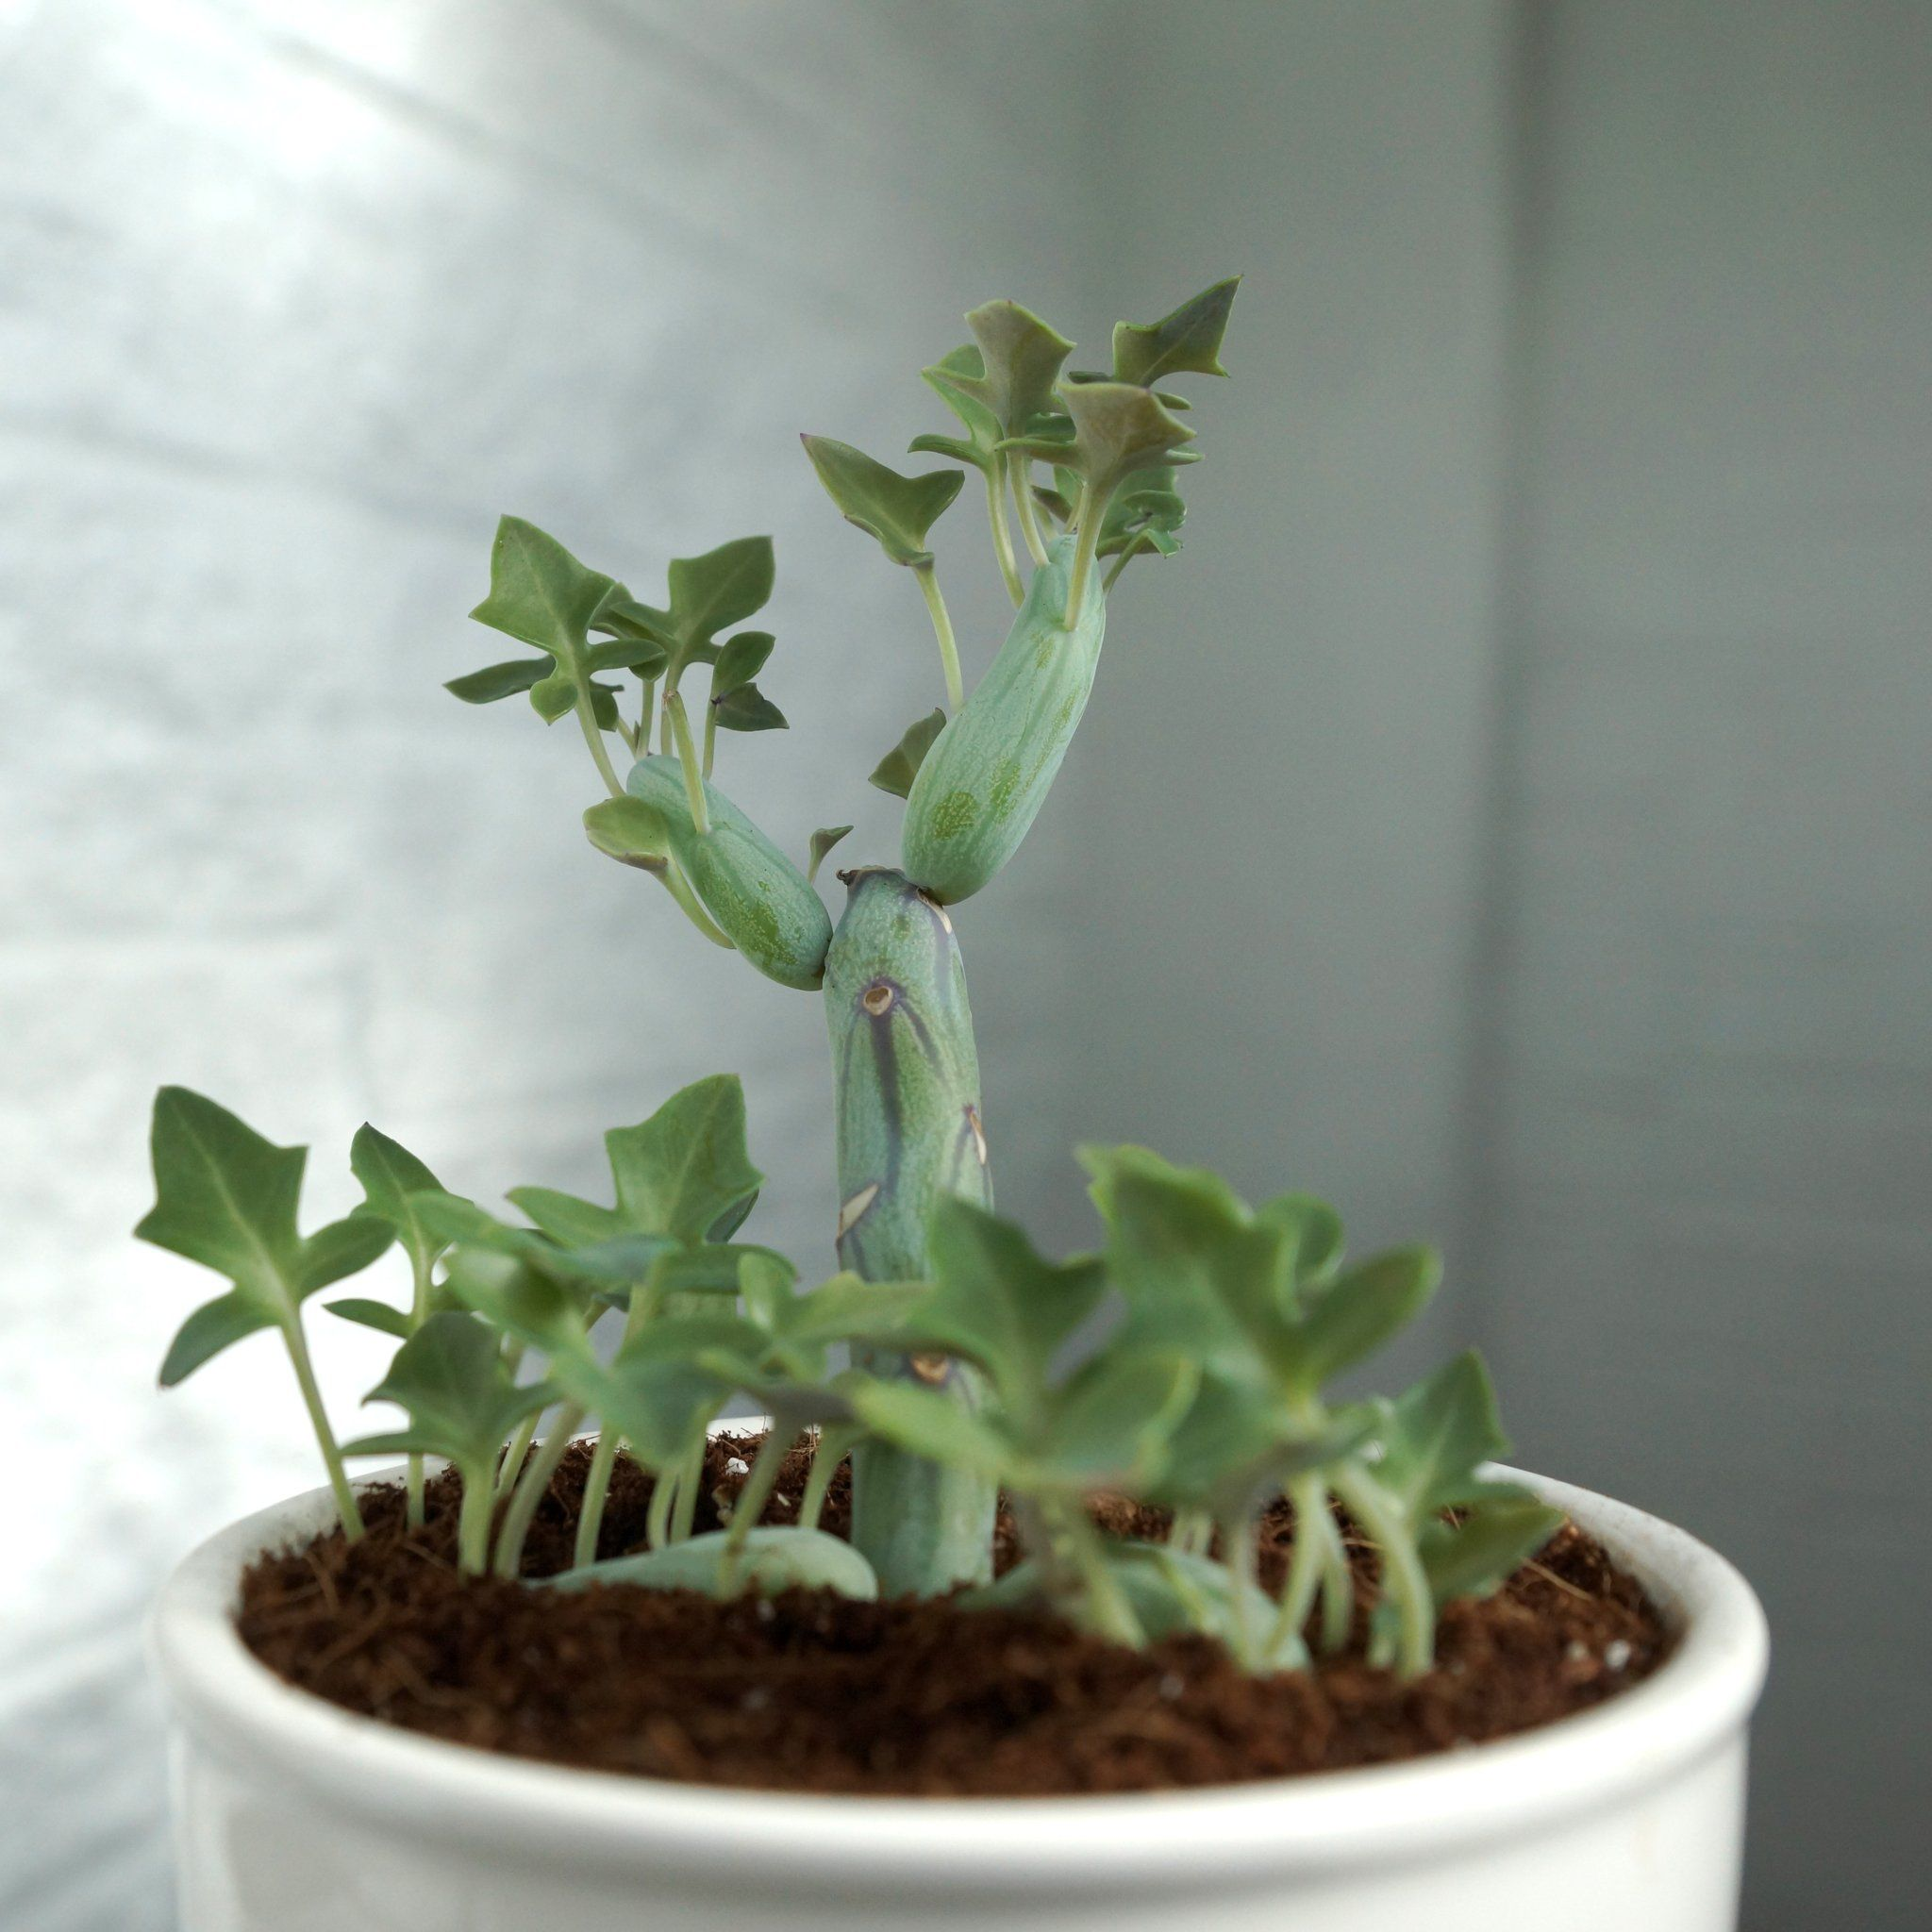 This is a very interesting and odd succulent! This plant